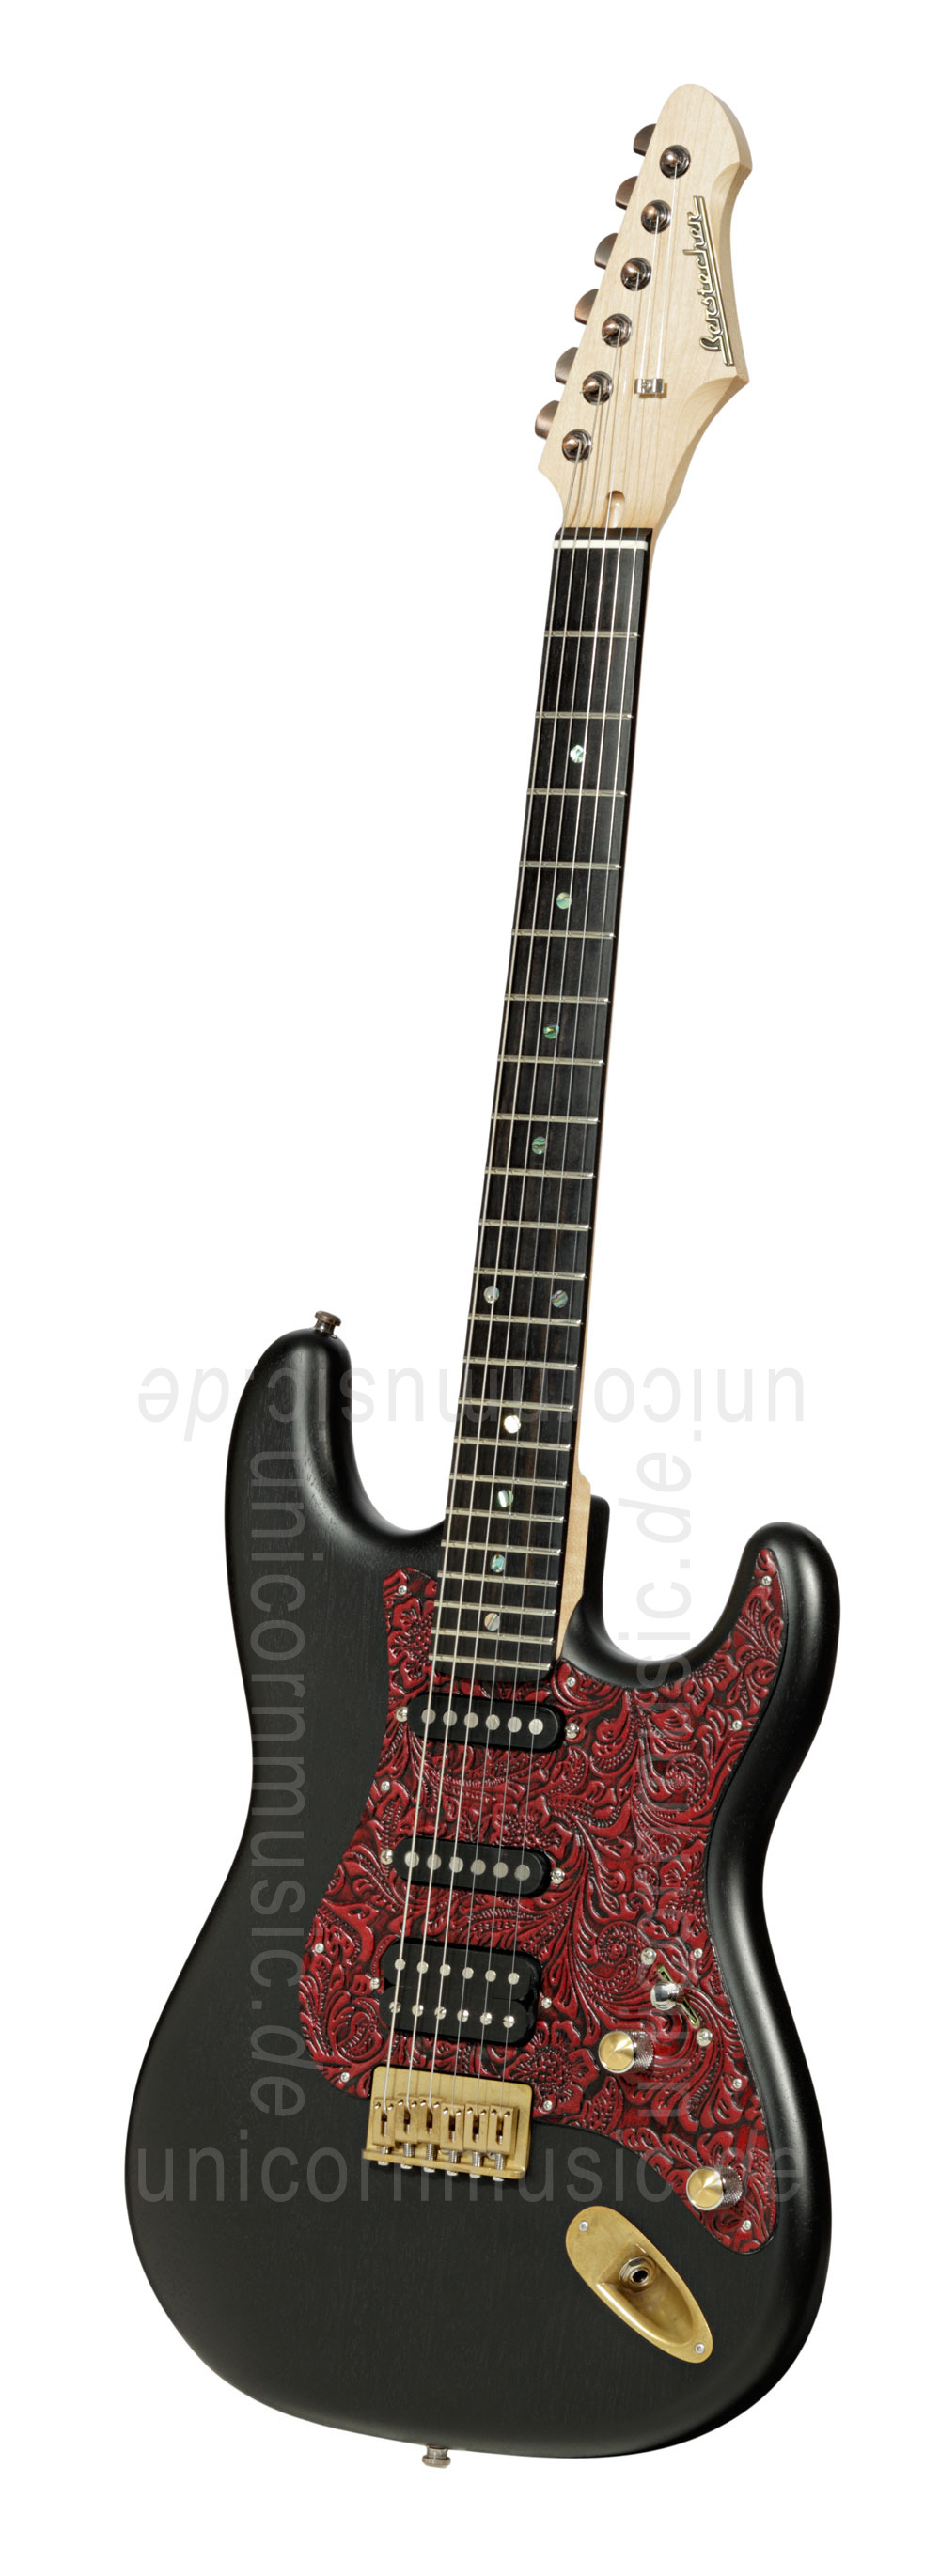 to article description / price Electric Guitar BERSTECHER Vintage 2018 - Black / Floral Red + hard case - made in Germany